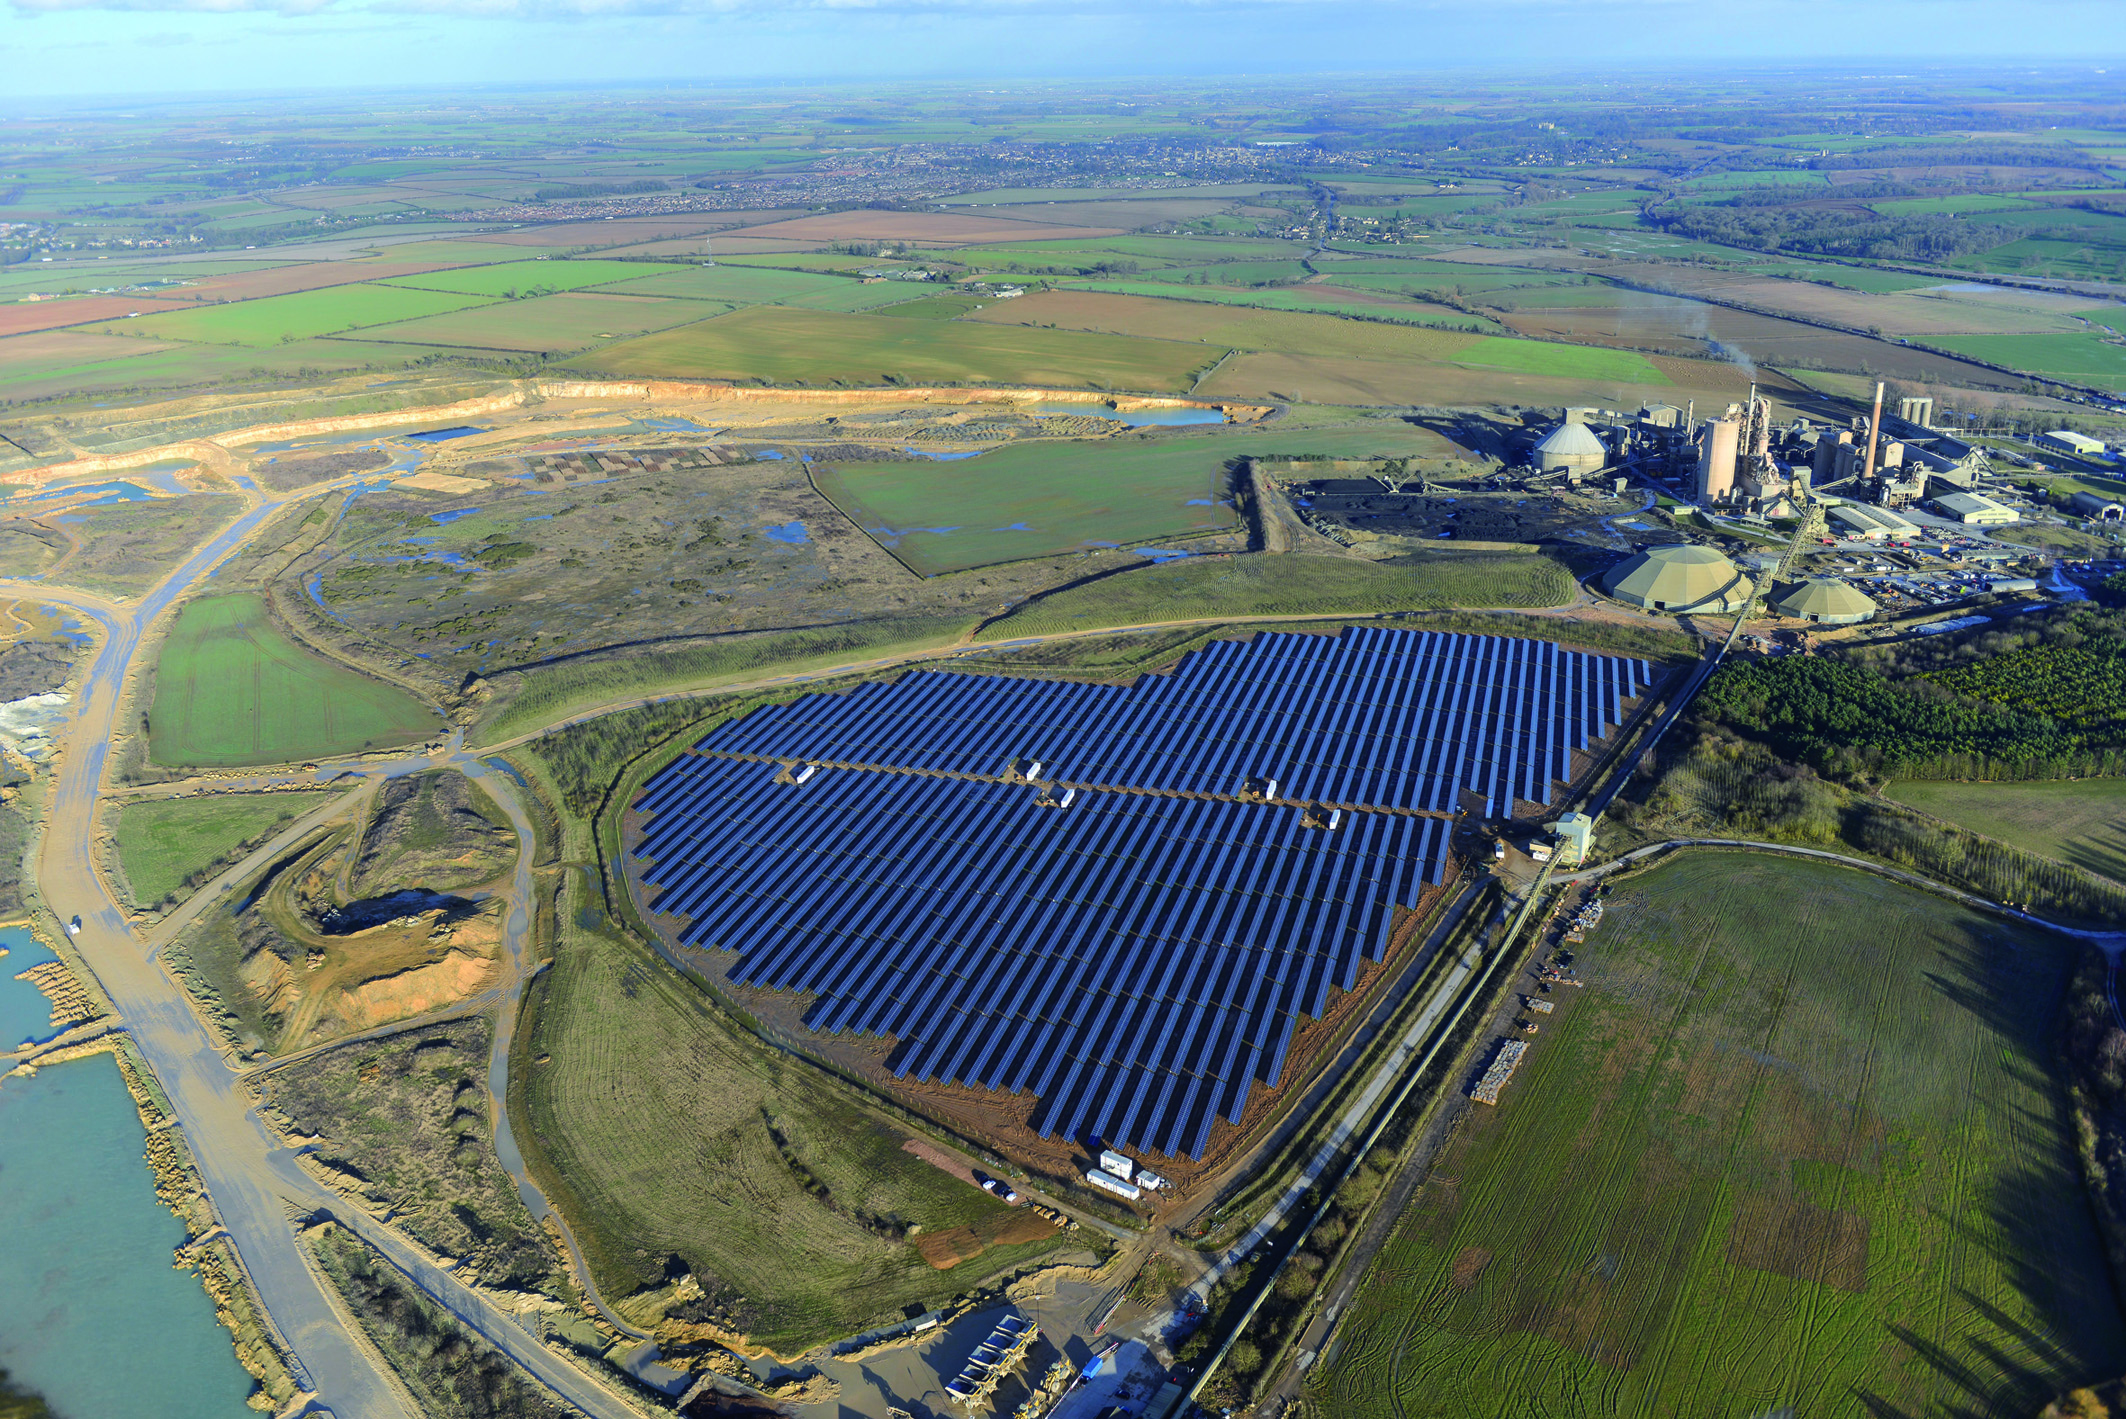 Solar Farm Lark Energy faces Political Challenges but have Public Backing